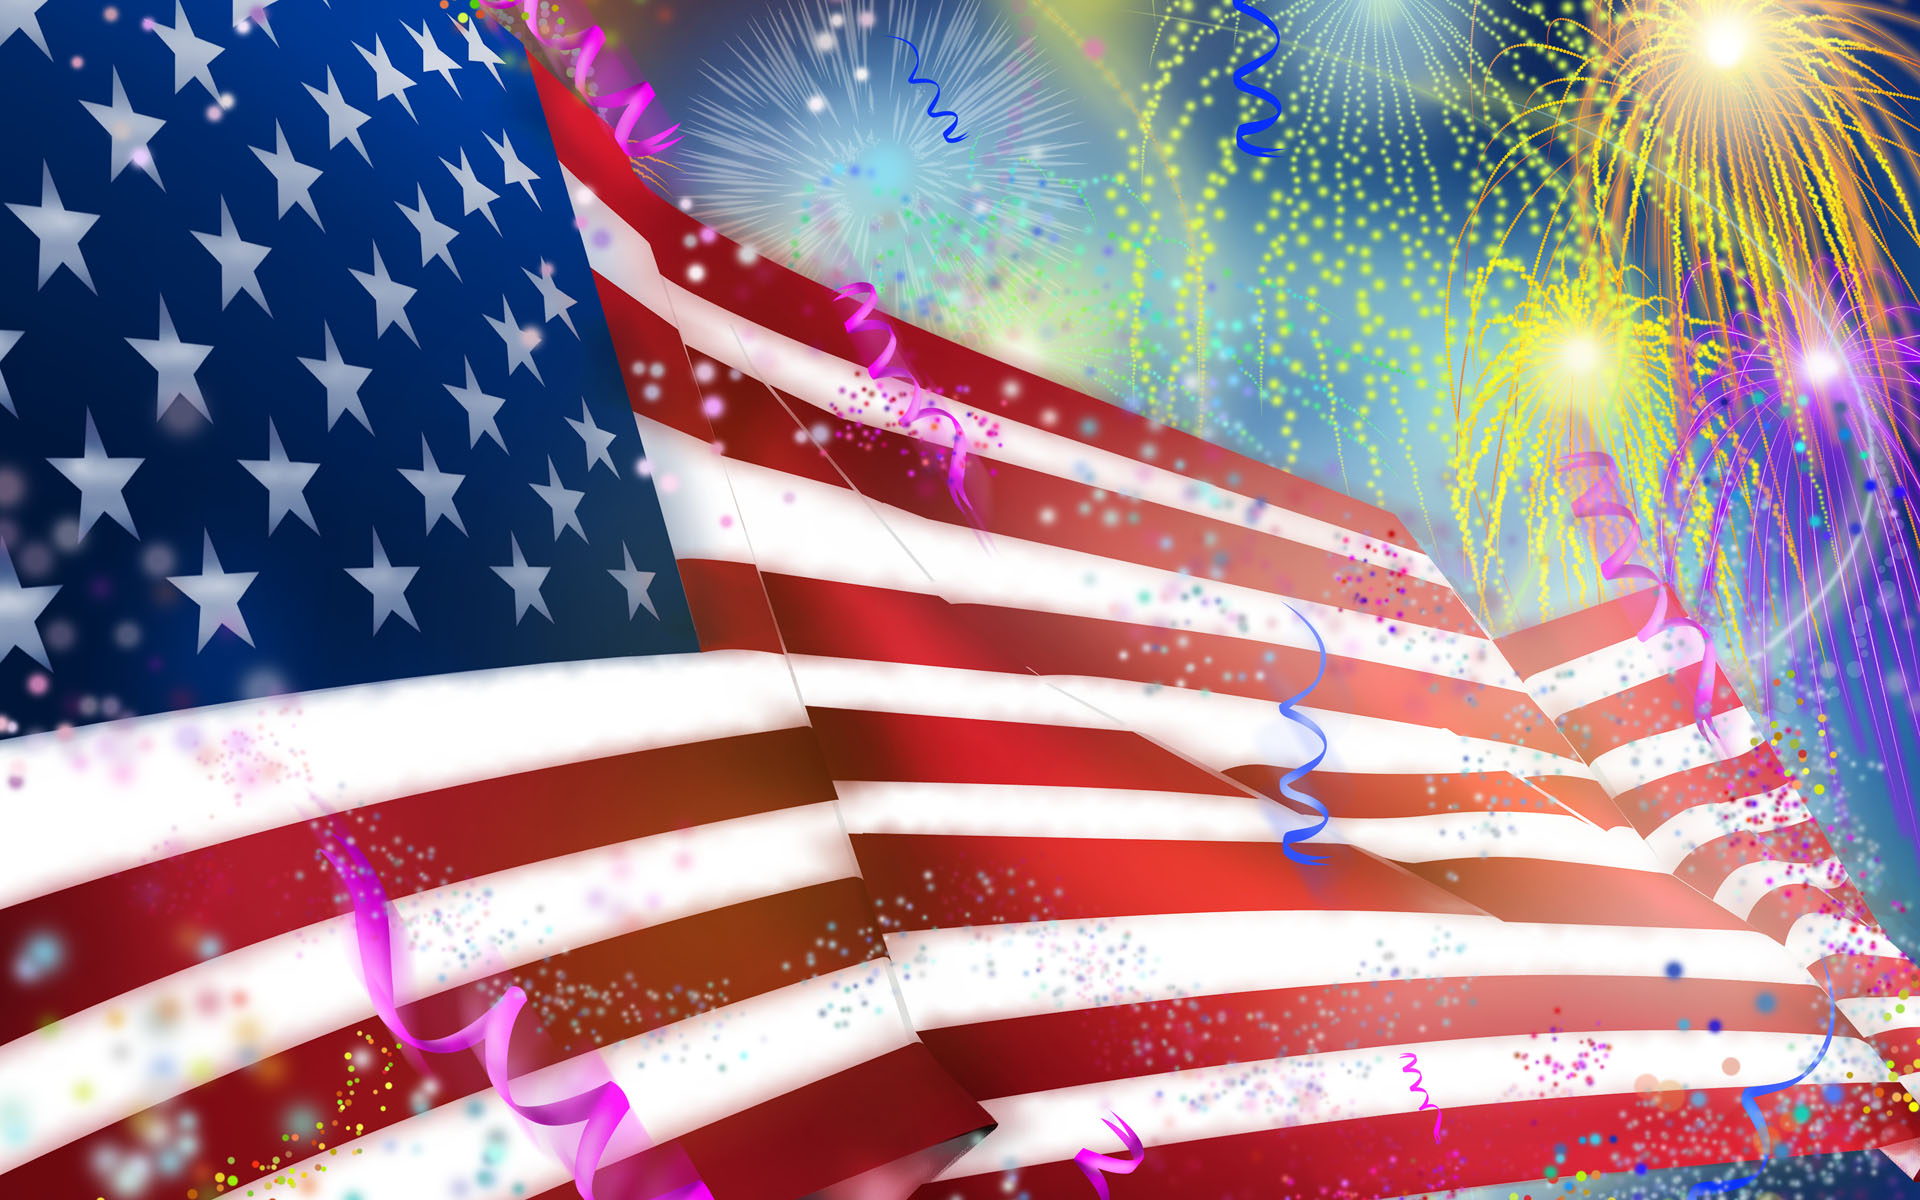 Independence-Day-united-states-of-america-1920-1200-HD-Wallpapers.jpg